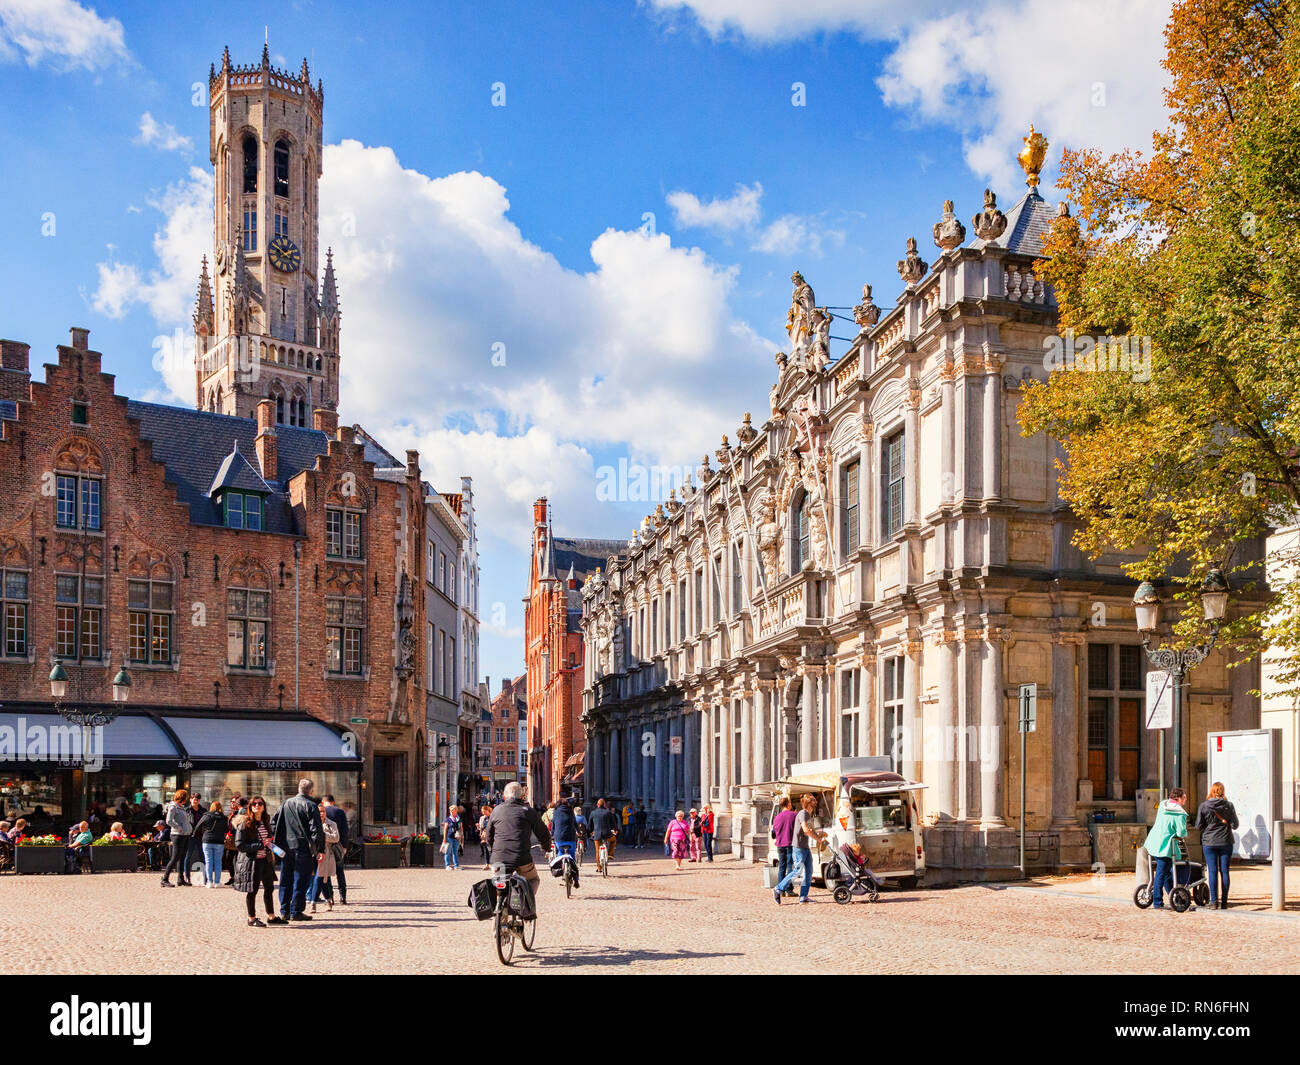 25 September 2018: Bruges, Belgium - View of the Bruges Belfry, or Belfort, from the main square of the city, the Burg. The area is crowded with touri Stock Photo